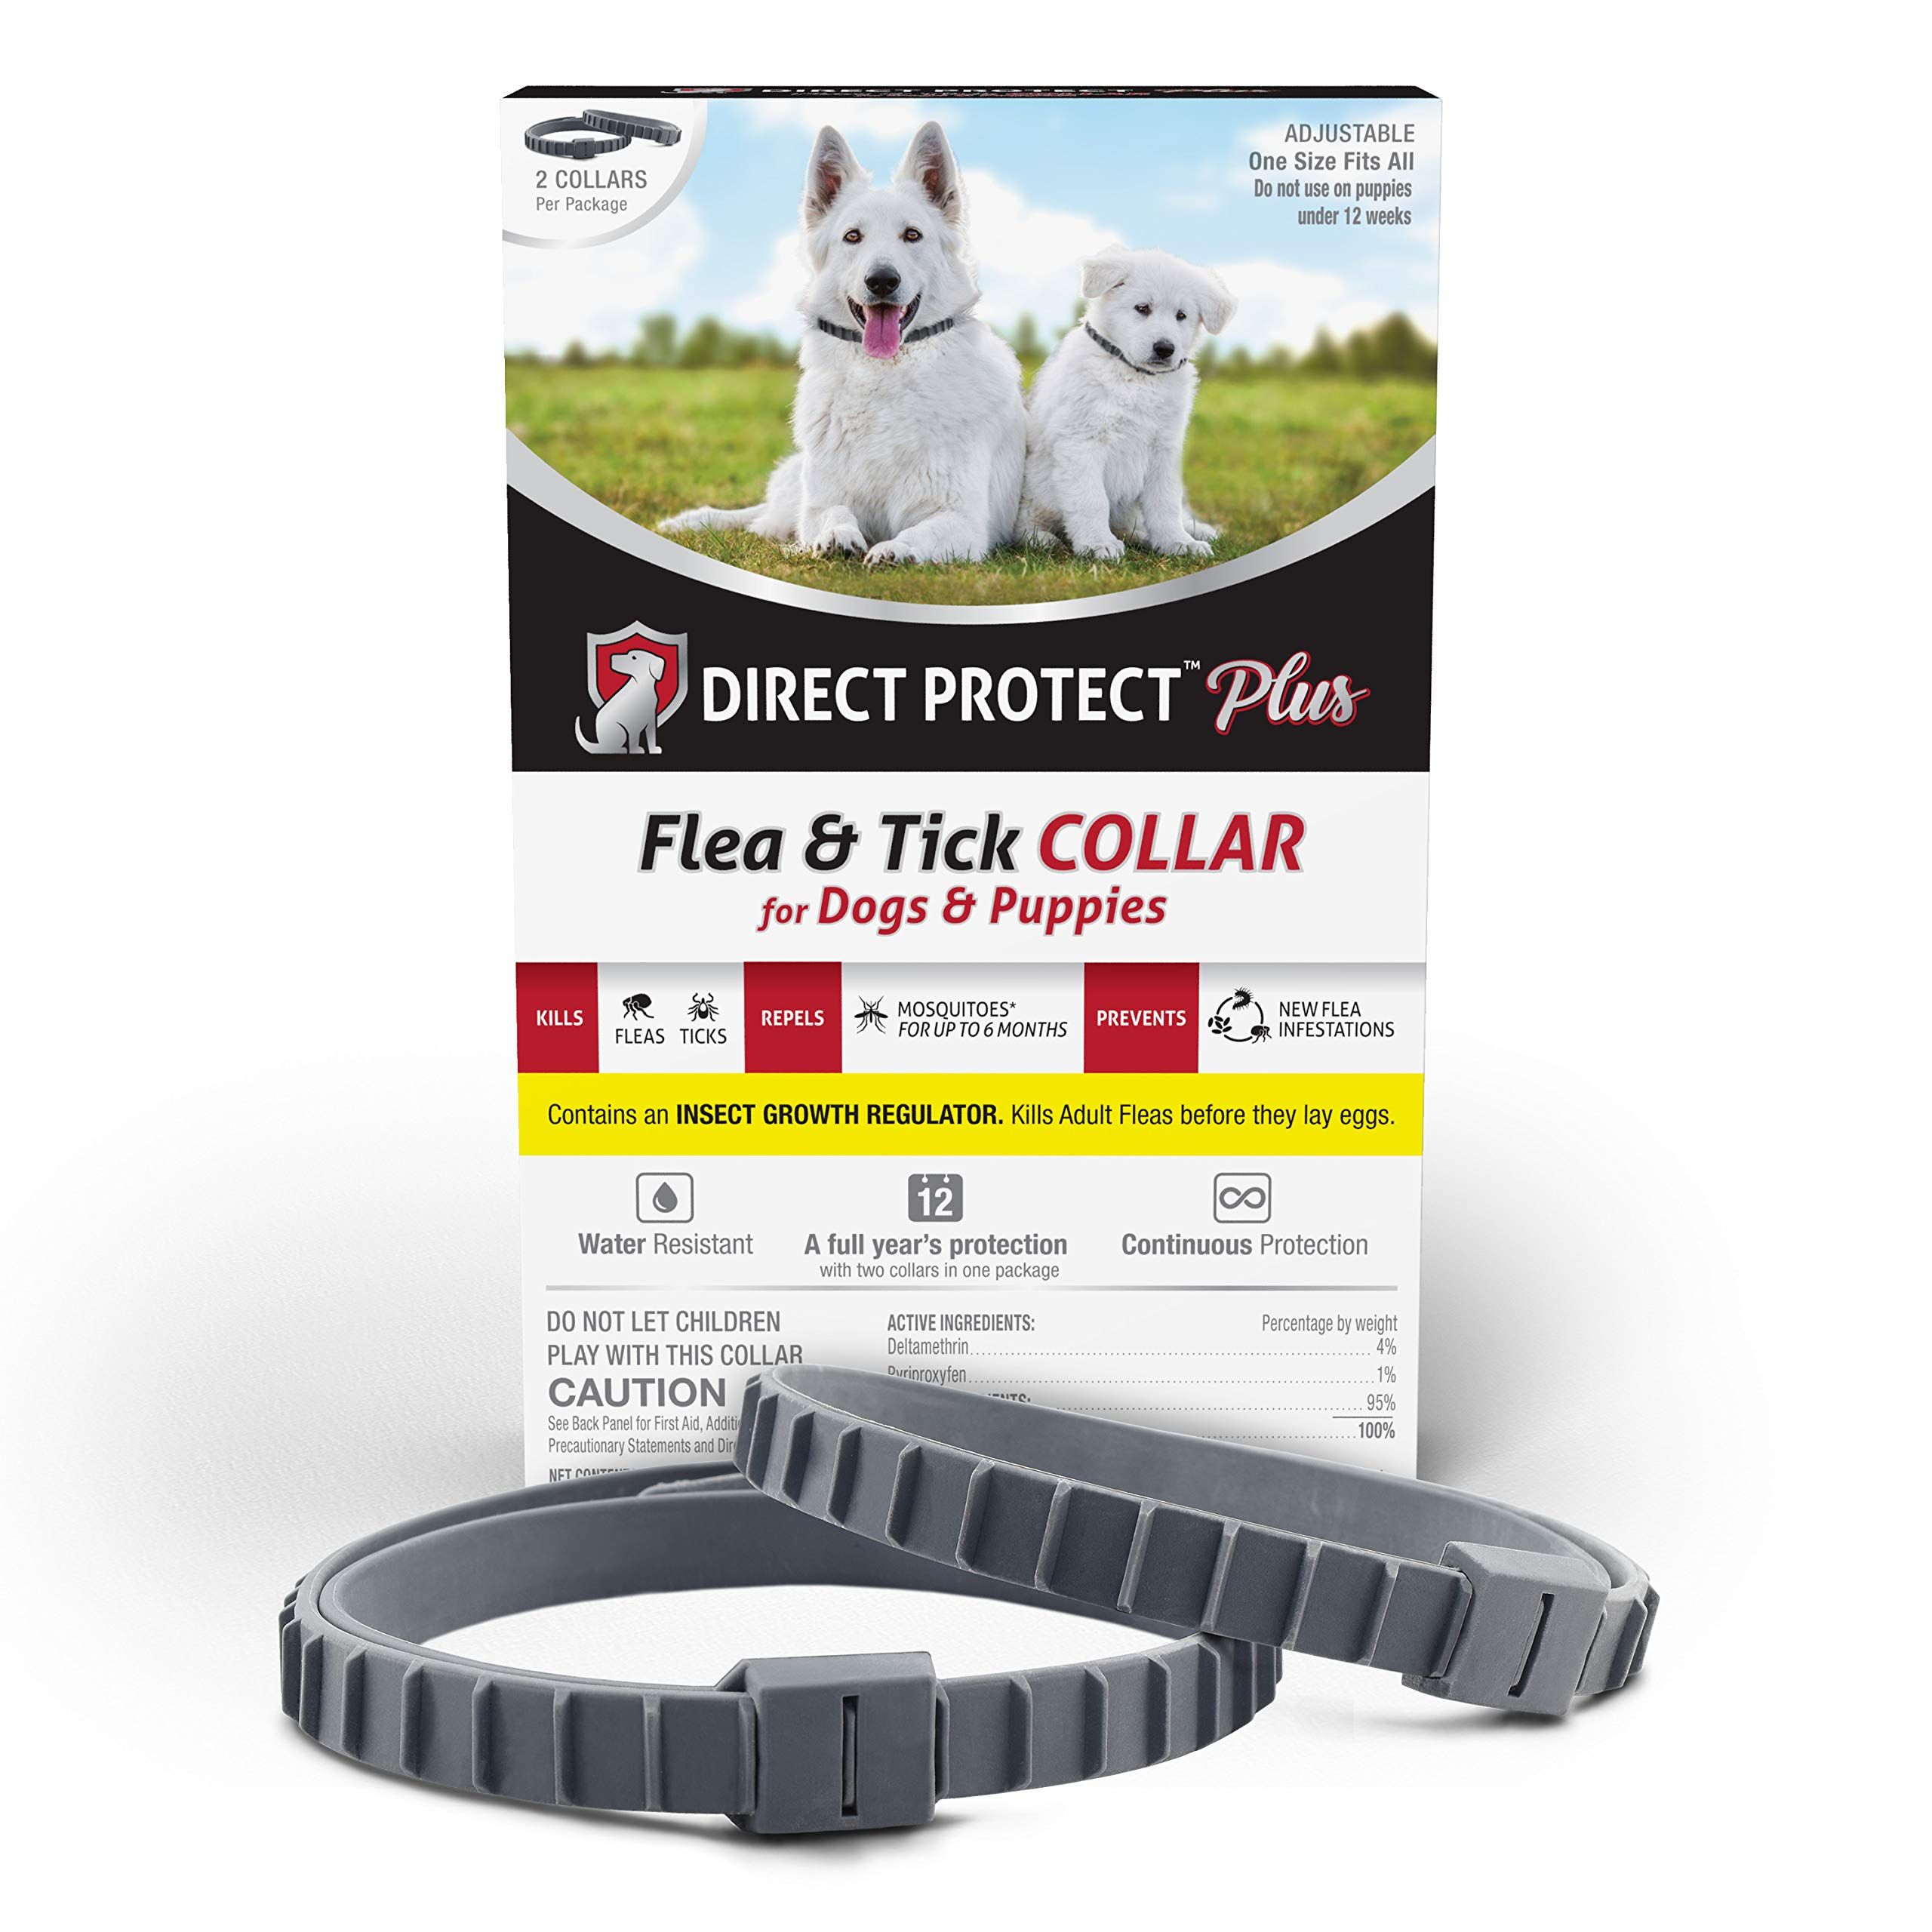 Direct Protect Plus Flea & Tick Collars Dogs & Puppies